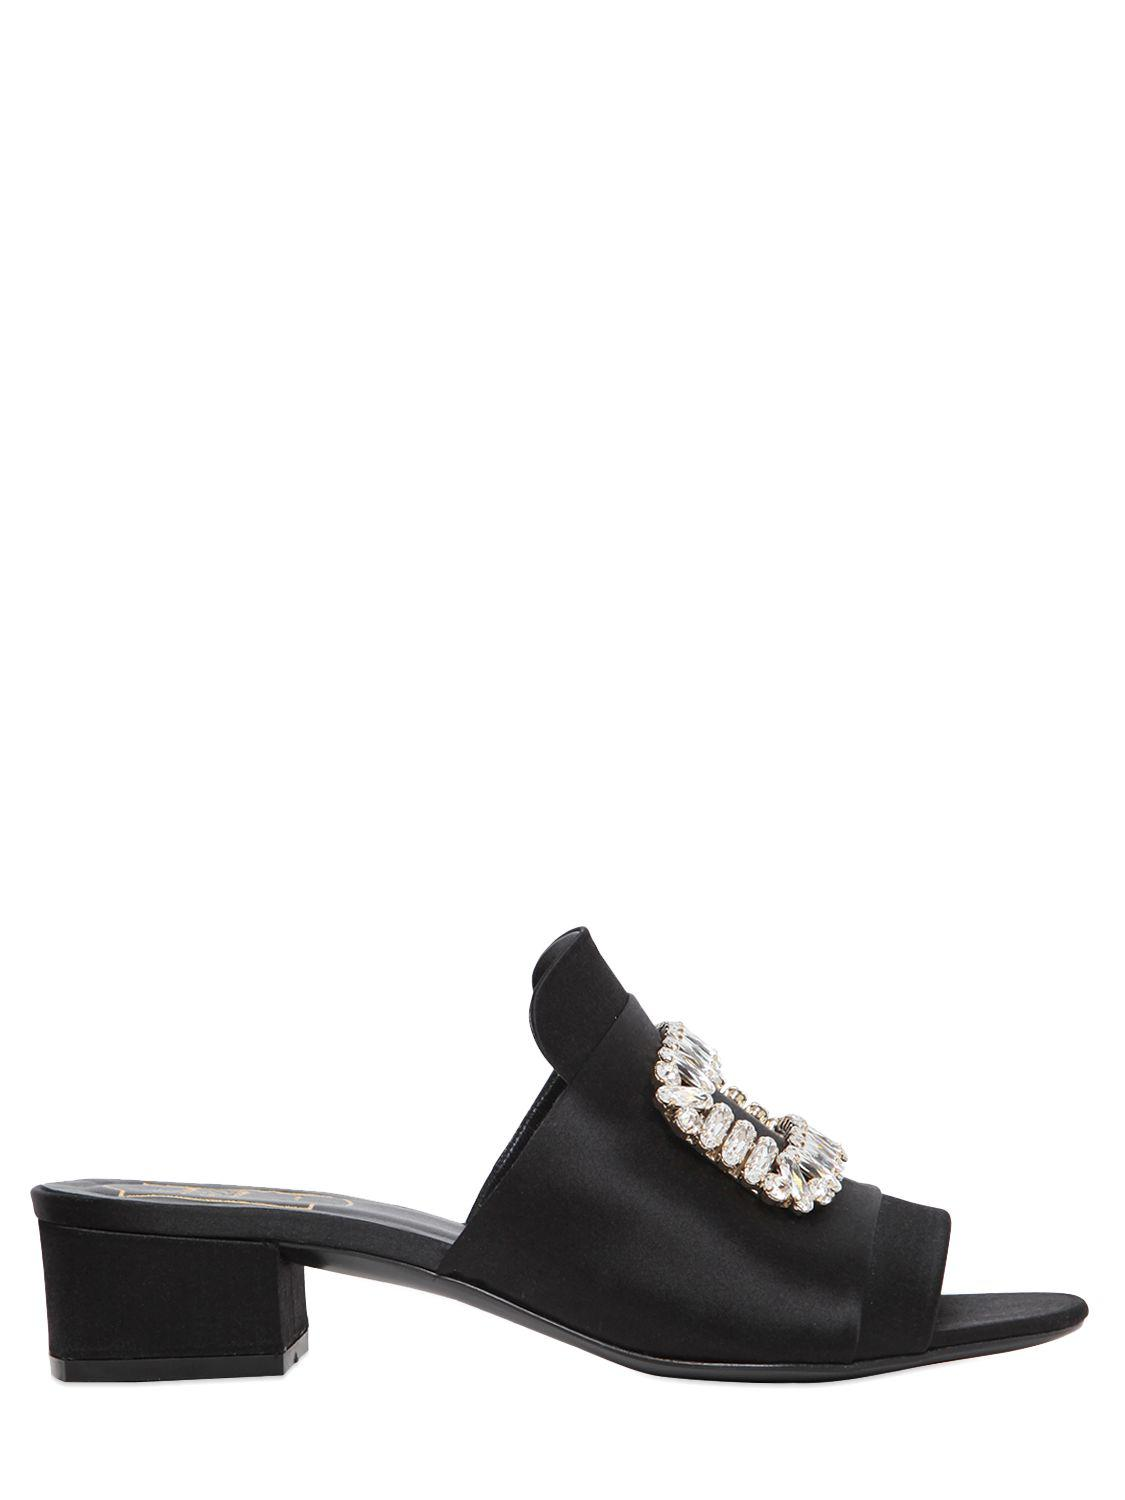 Roger Vivier. Women's Black 40mm Swarovski Satin Slide Sandals